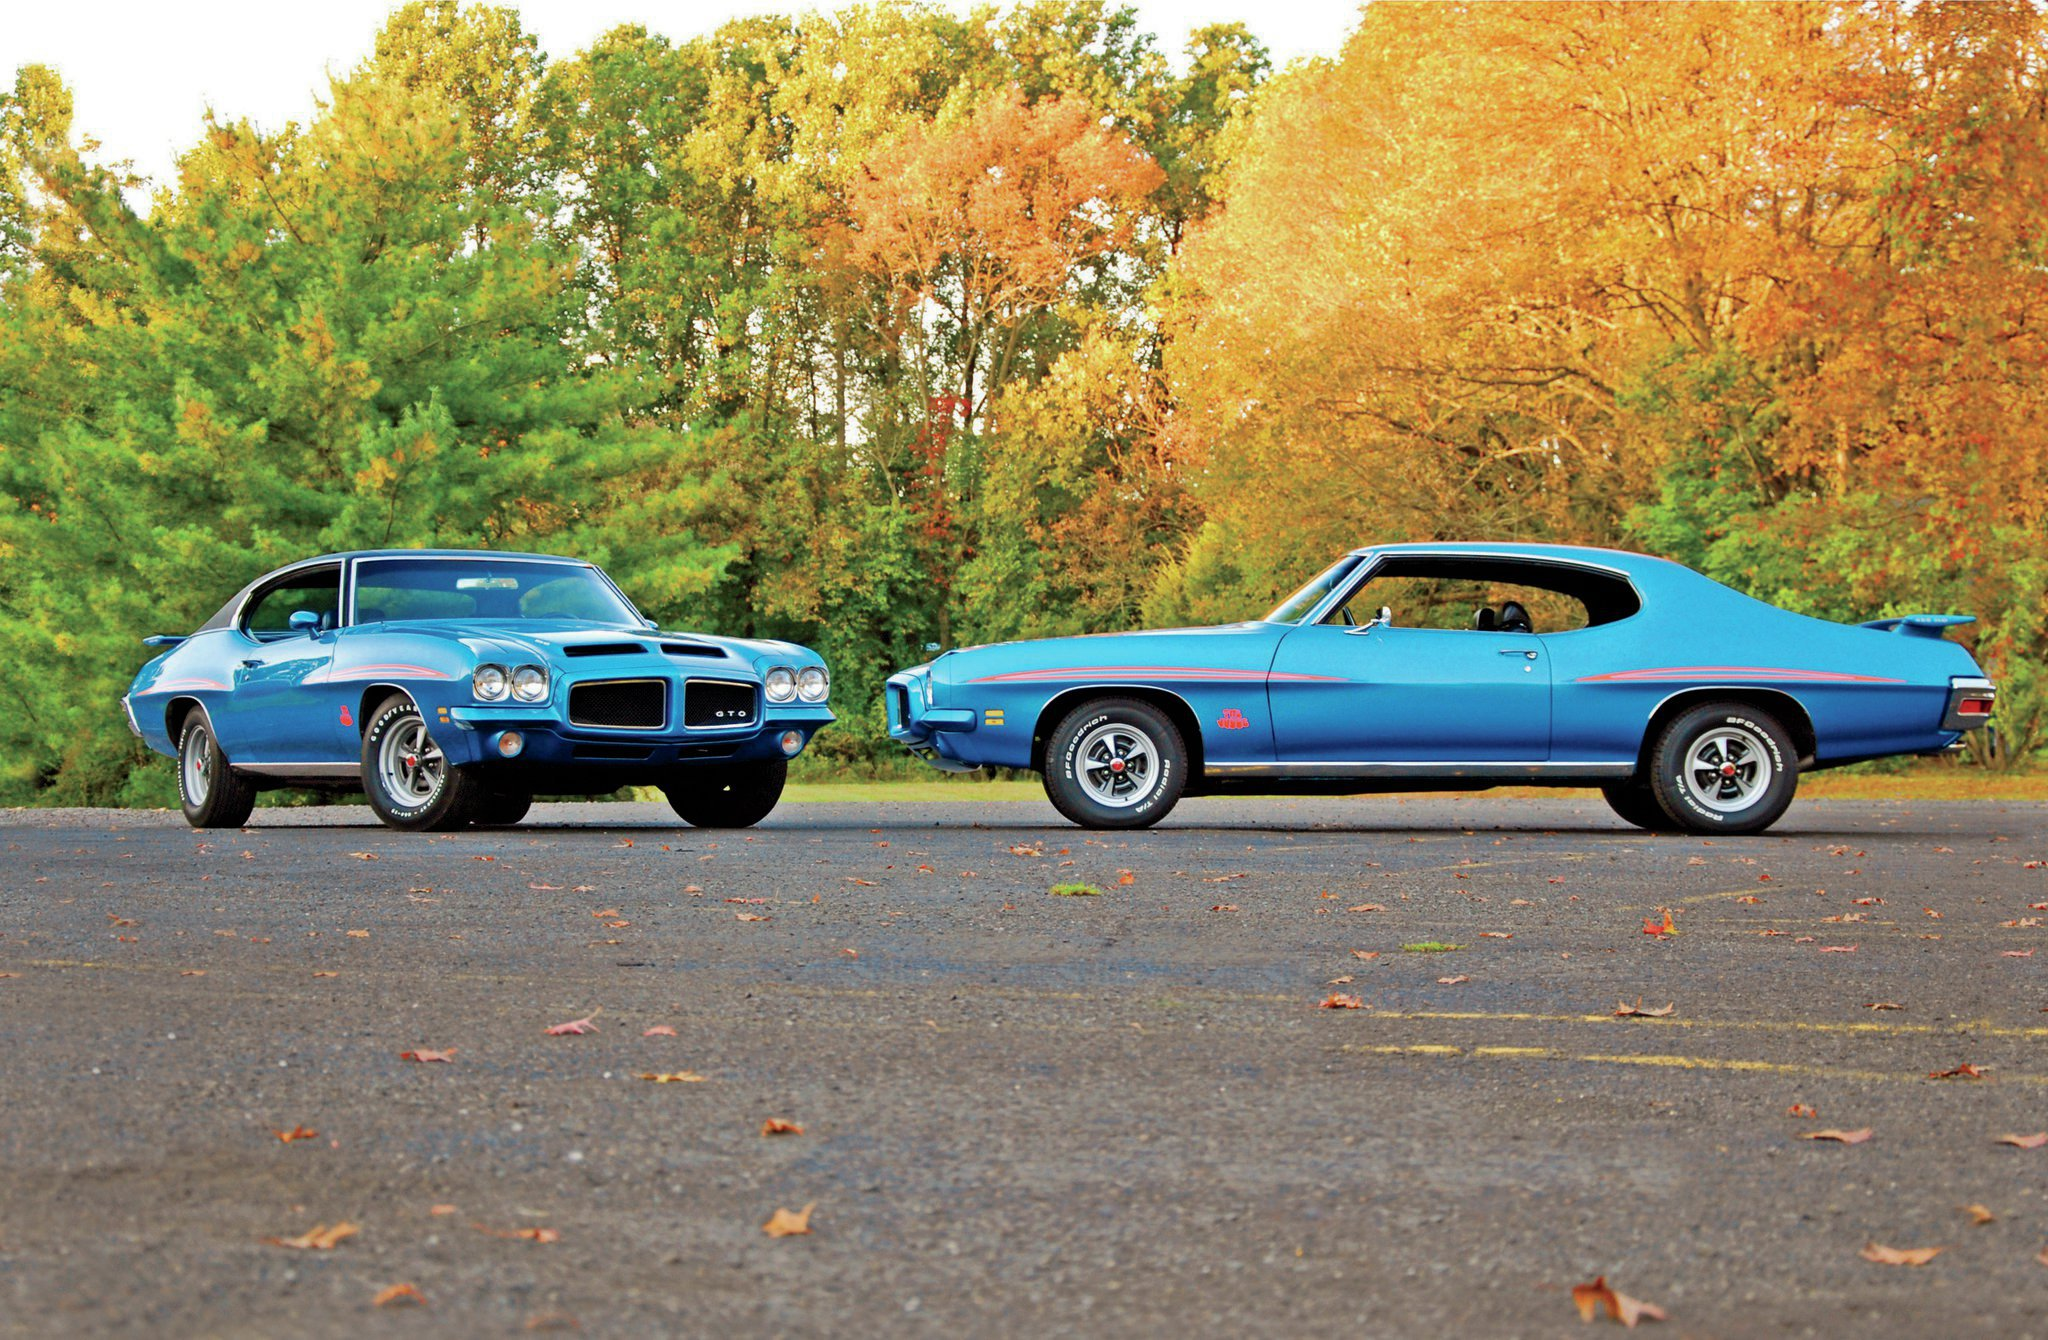 With only 357 samples produced, finding one '71 Judge hardtop is a hard enough task, but two, that's a real challenge. Owner Bob Schweitzer never set out to own two matching rides; it was just provenance that the GTOs were both Lucerne Blue.